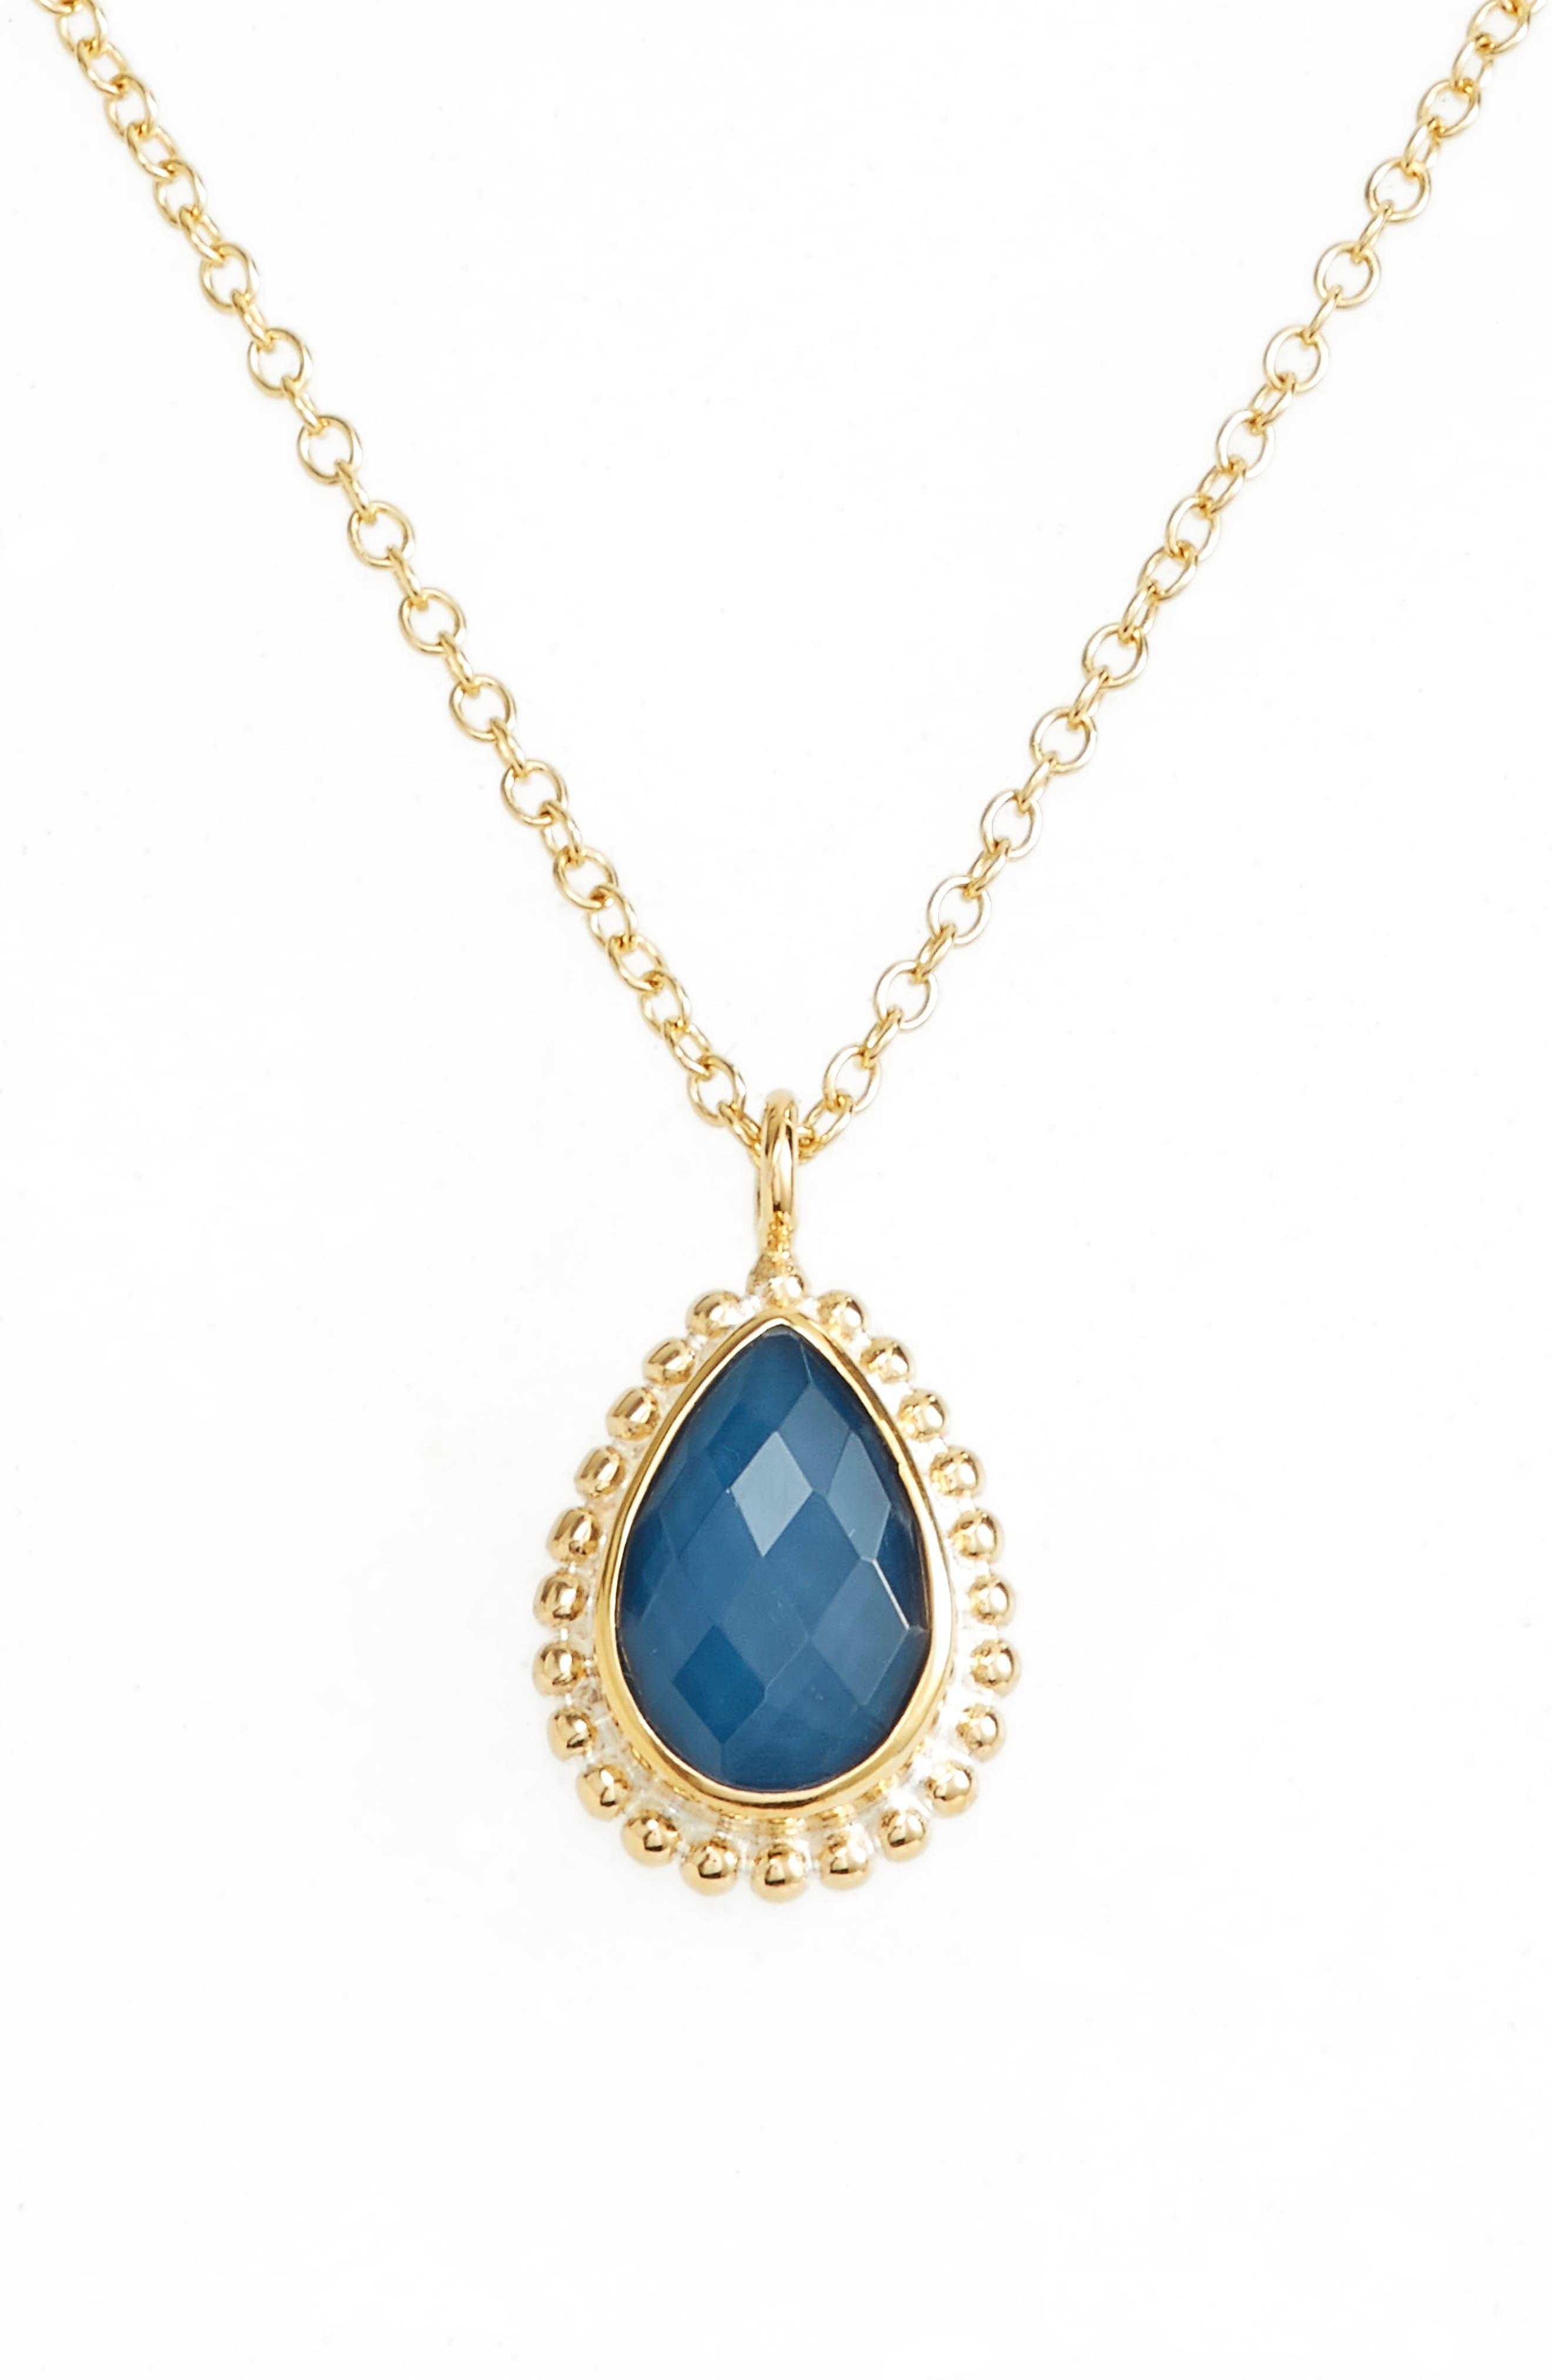 Blue Quartz Teardrop Pendant Necklace,                             Alternate thumbnail 2, color,                             Gold/ Blue Quartz